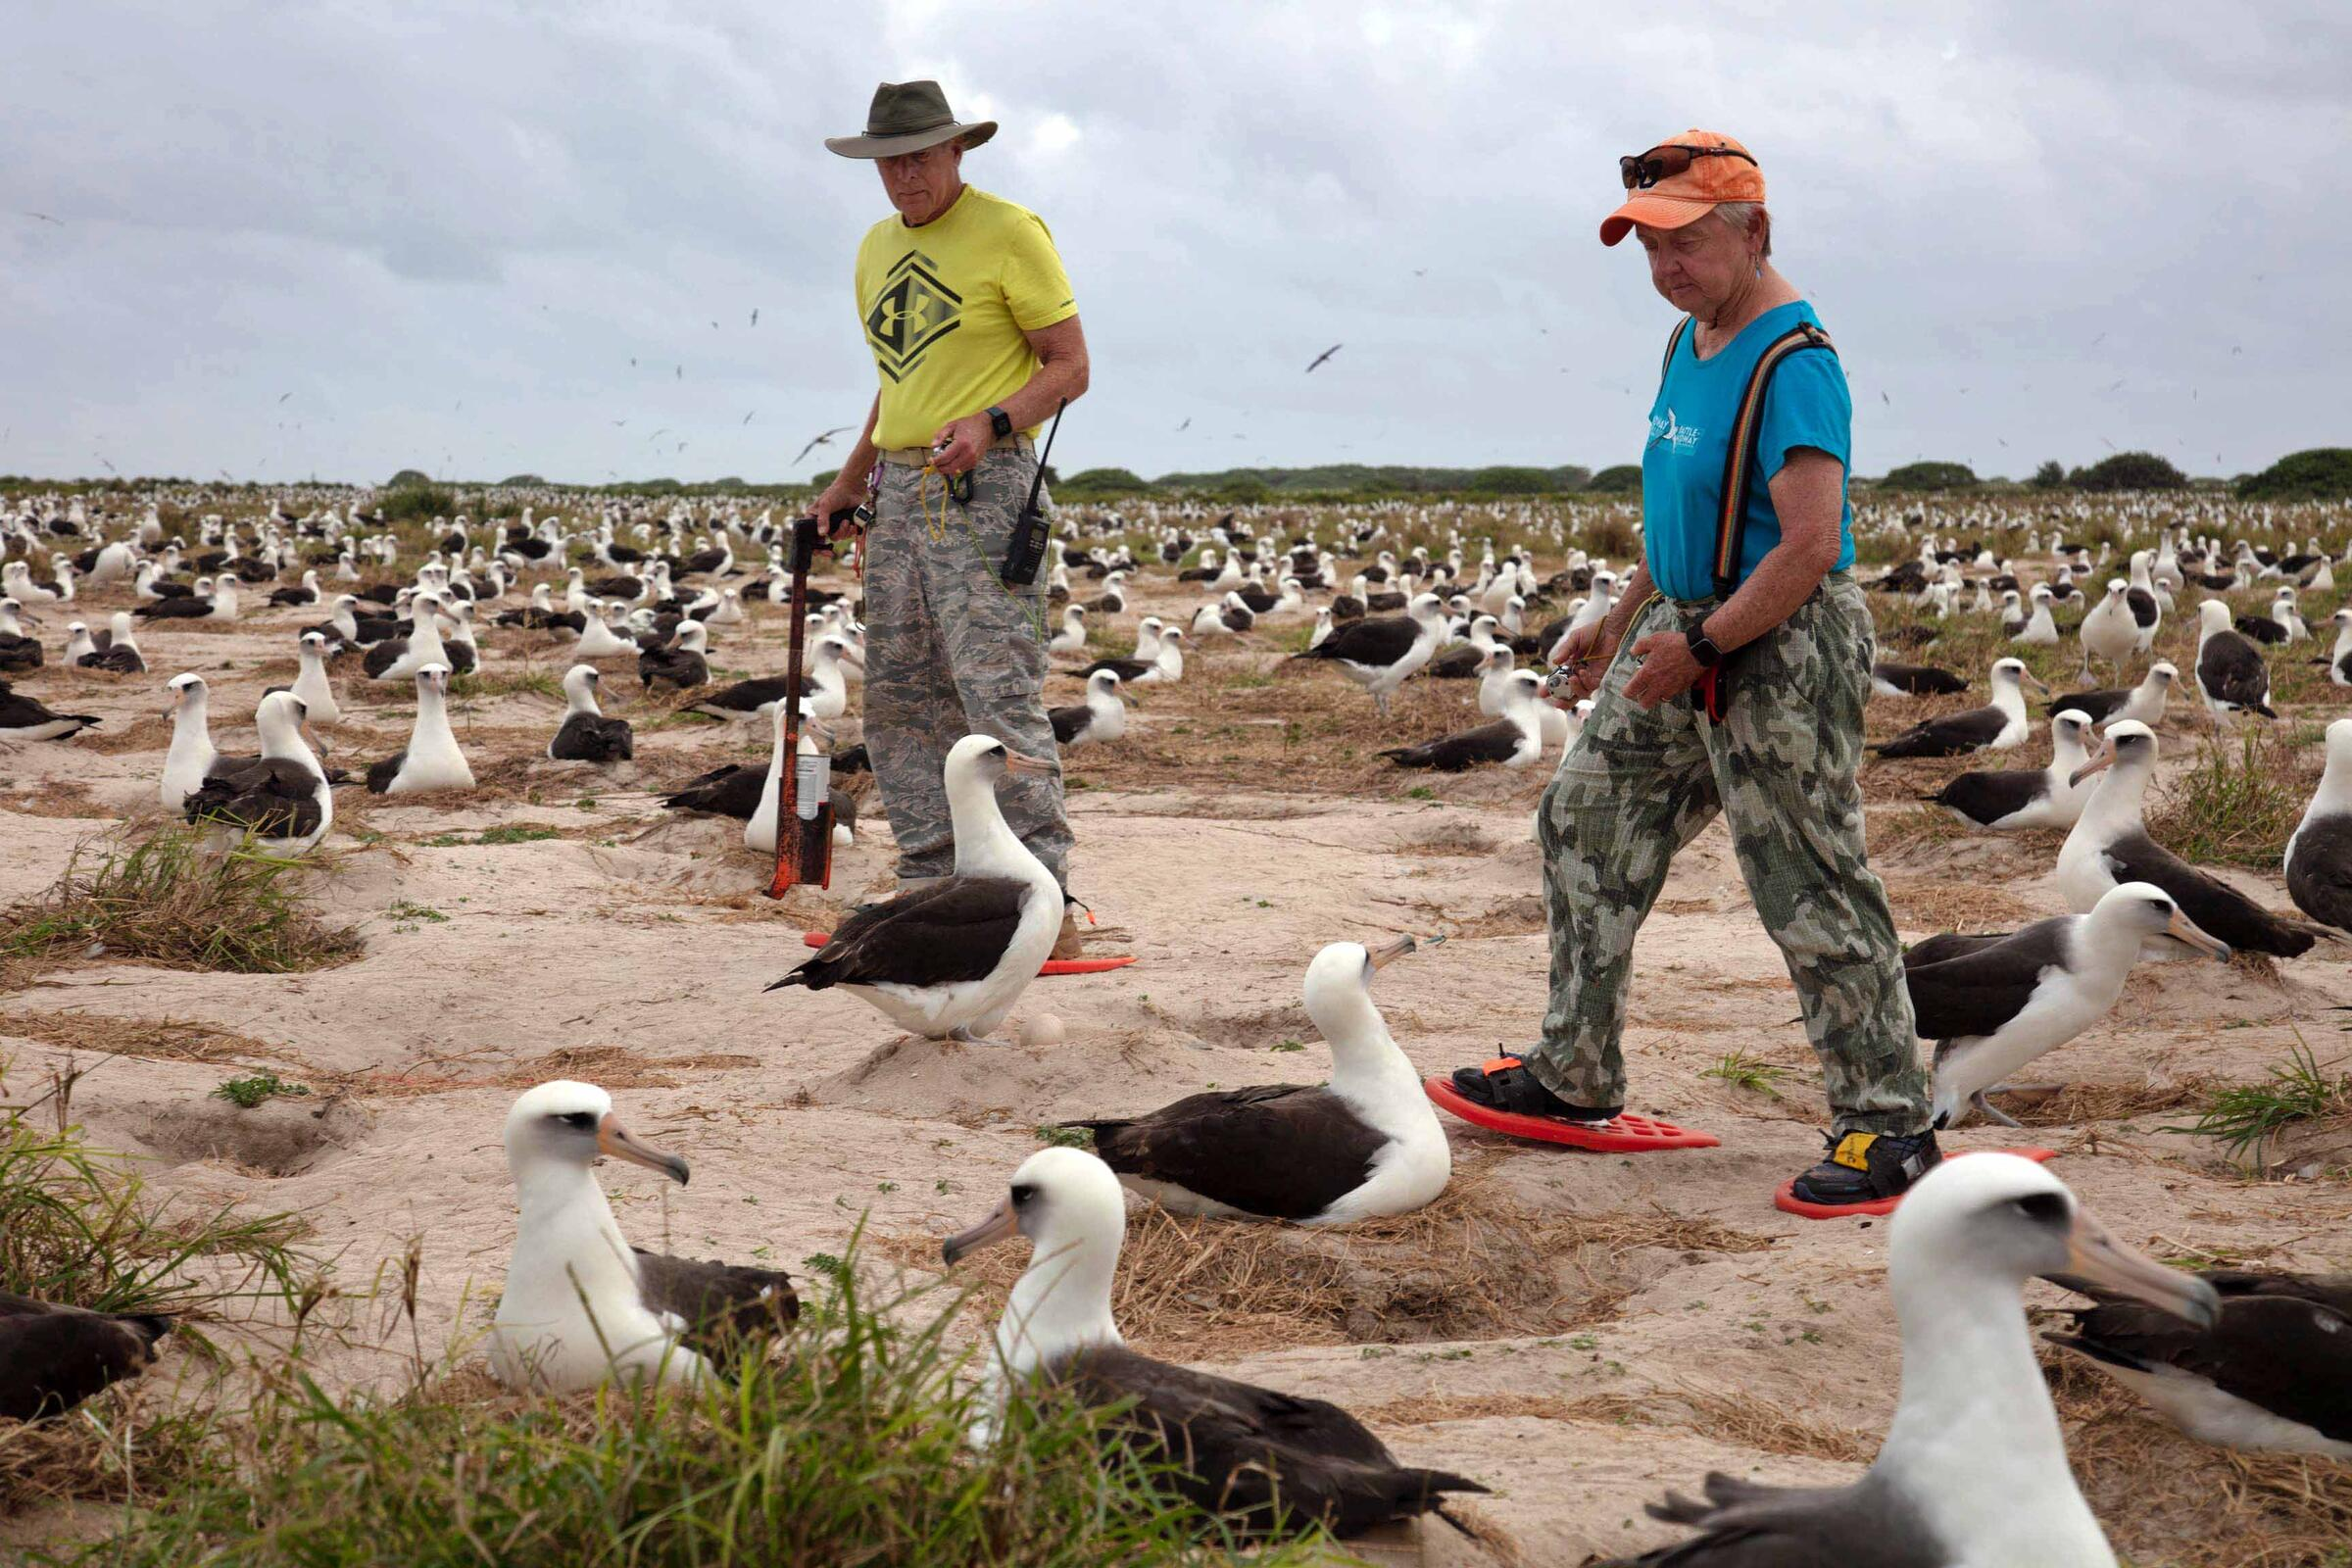 Longtime volunteers Jenny (right) and Richard Johnson carefully and methodically count birds on former Navy parade grounds on Sand Island where Laysan and Black-footed Albatrosses breed. Jon Brack/USFWS